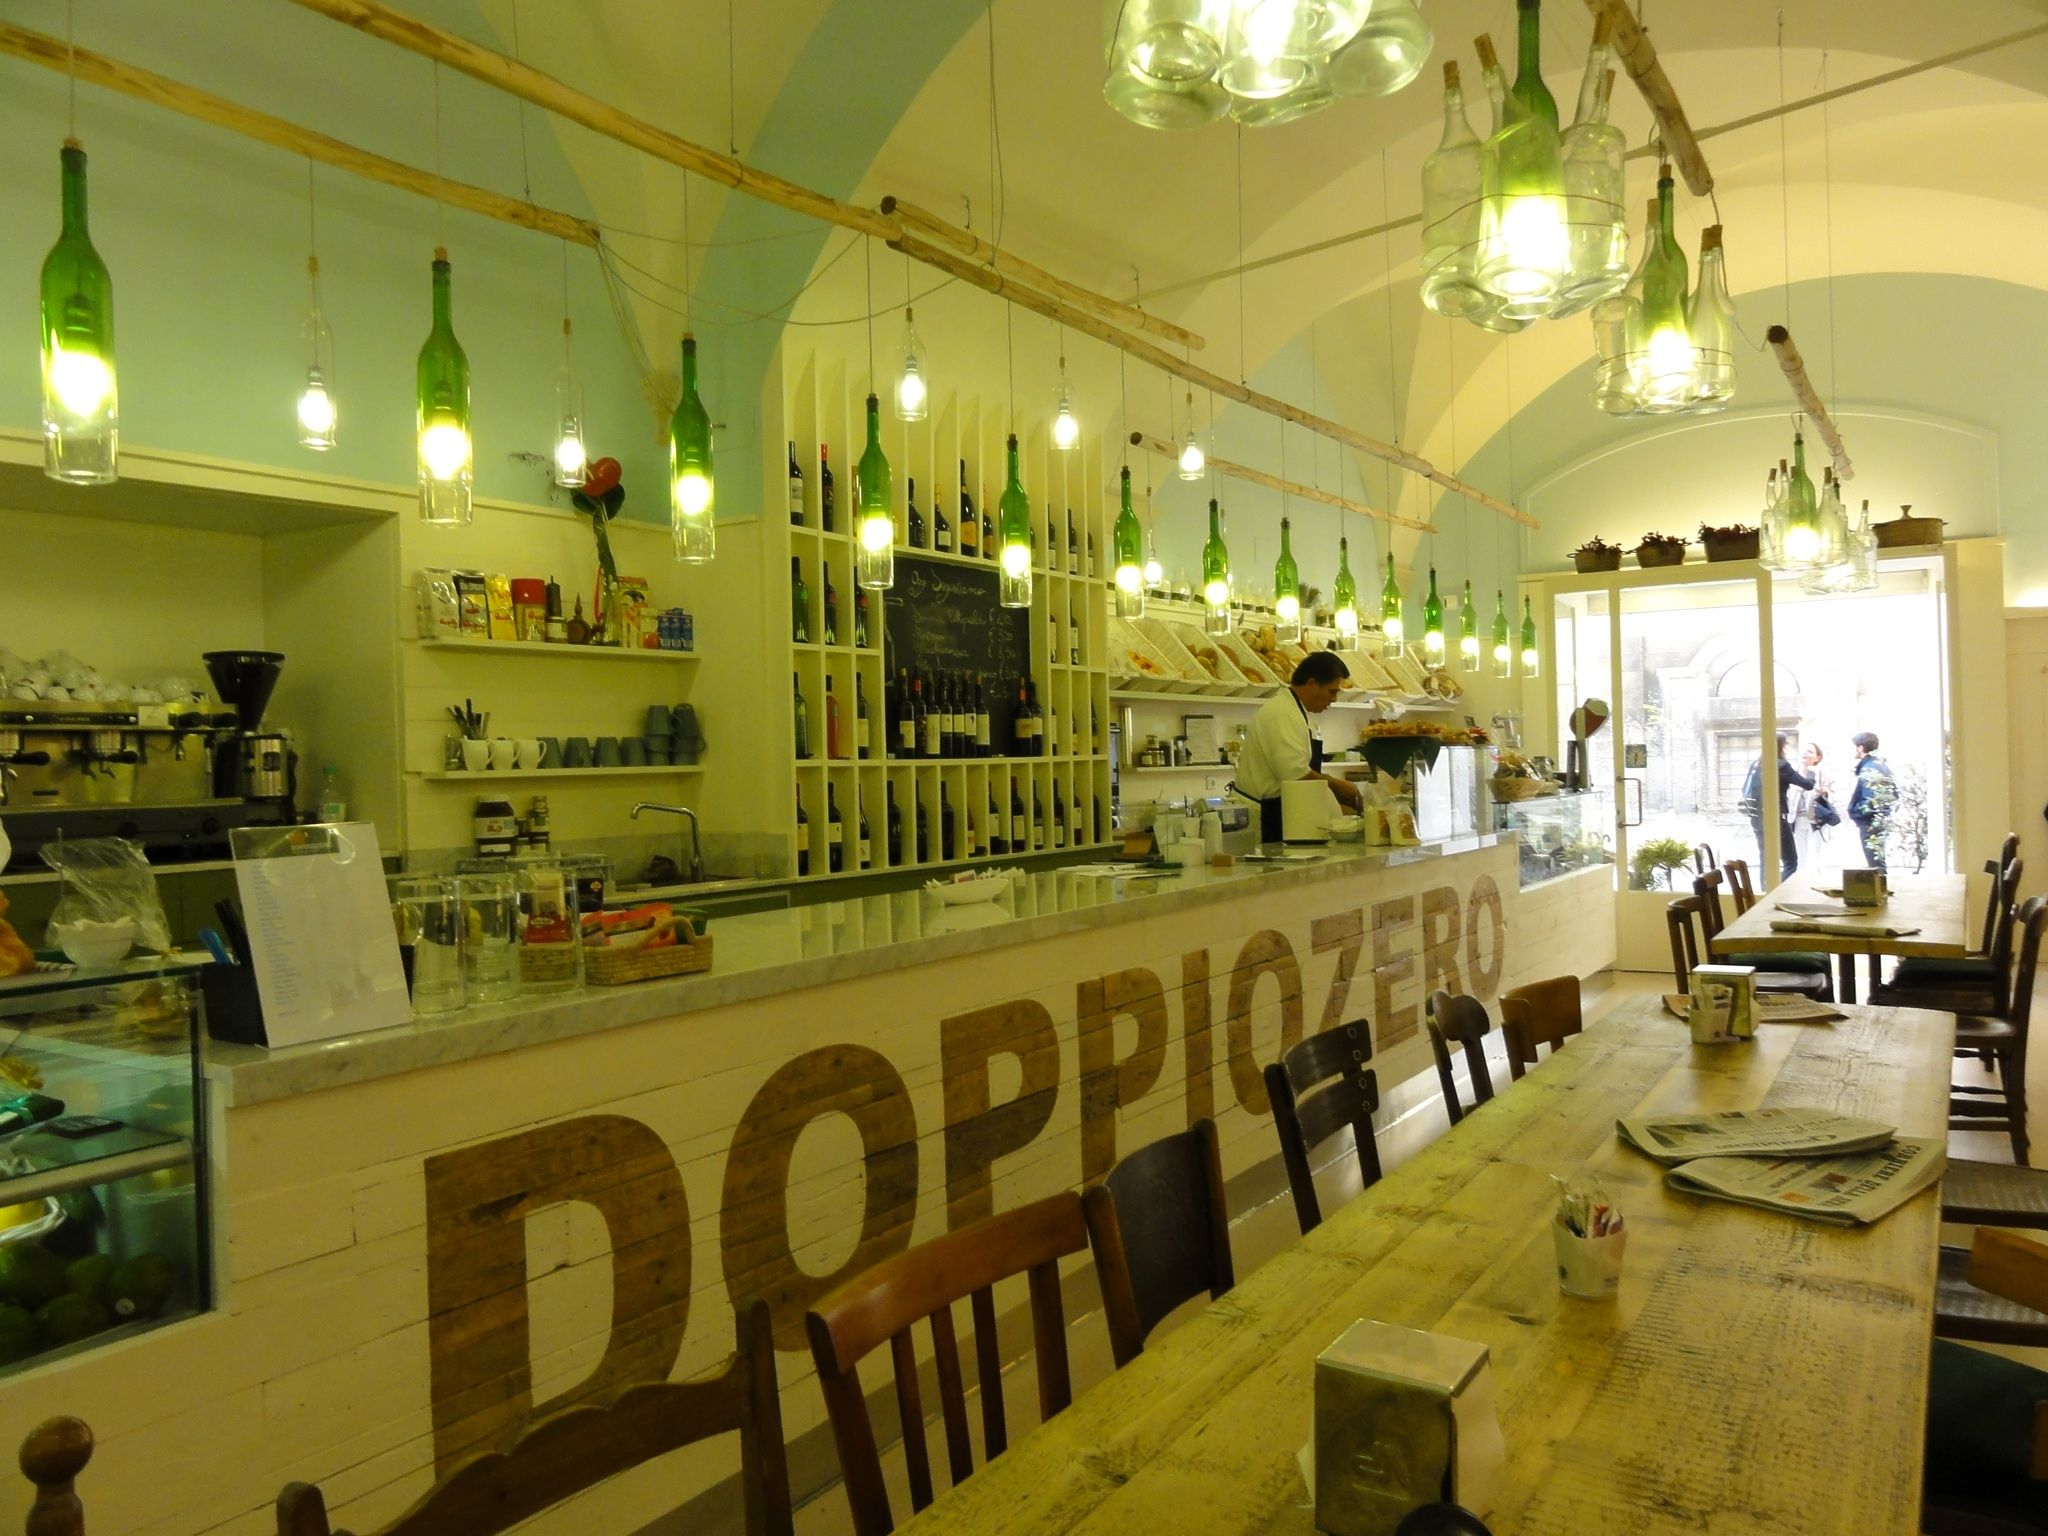 Doppiozero Lecce, Italy. Our favorite place for a snack or light meal.